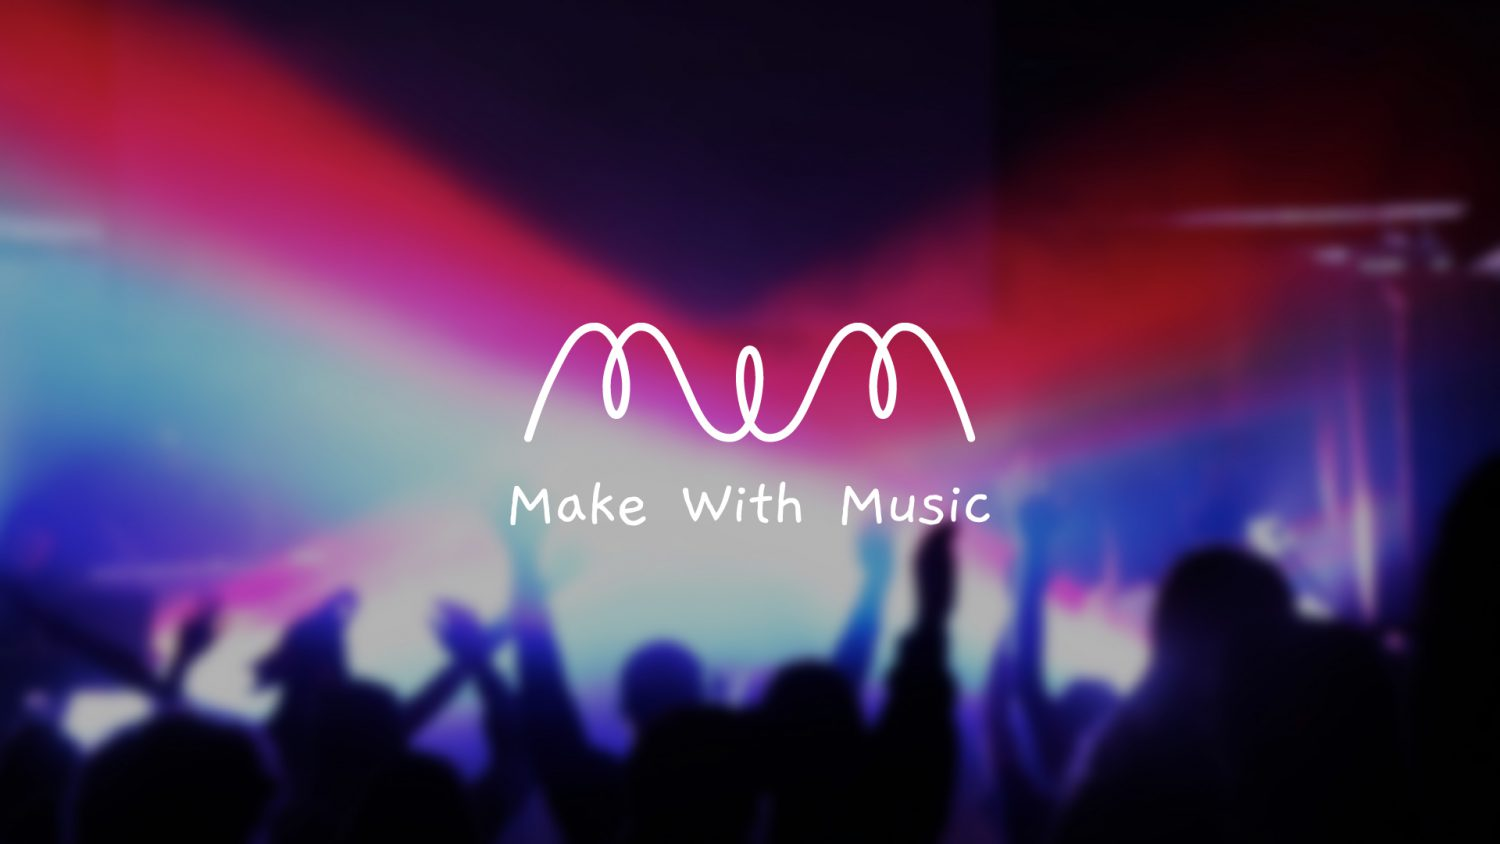 Make With Music